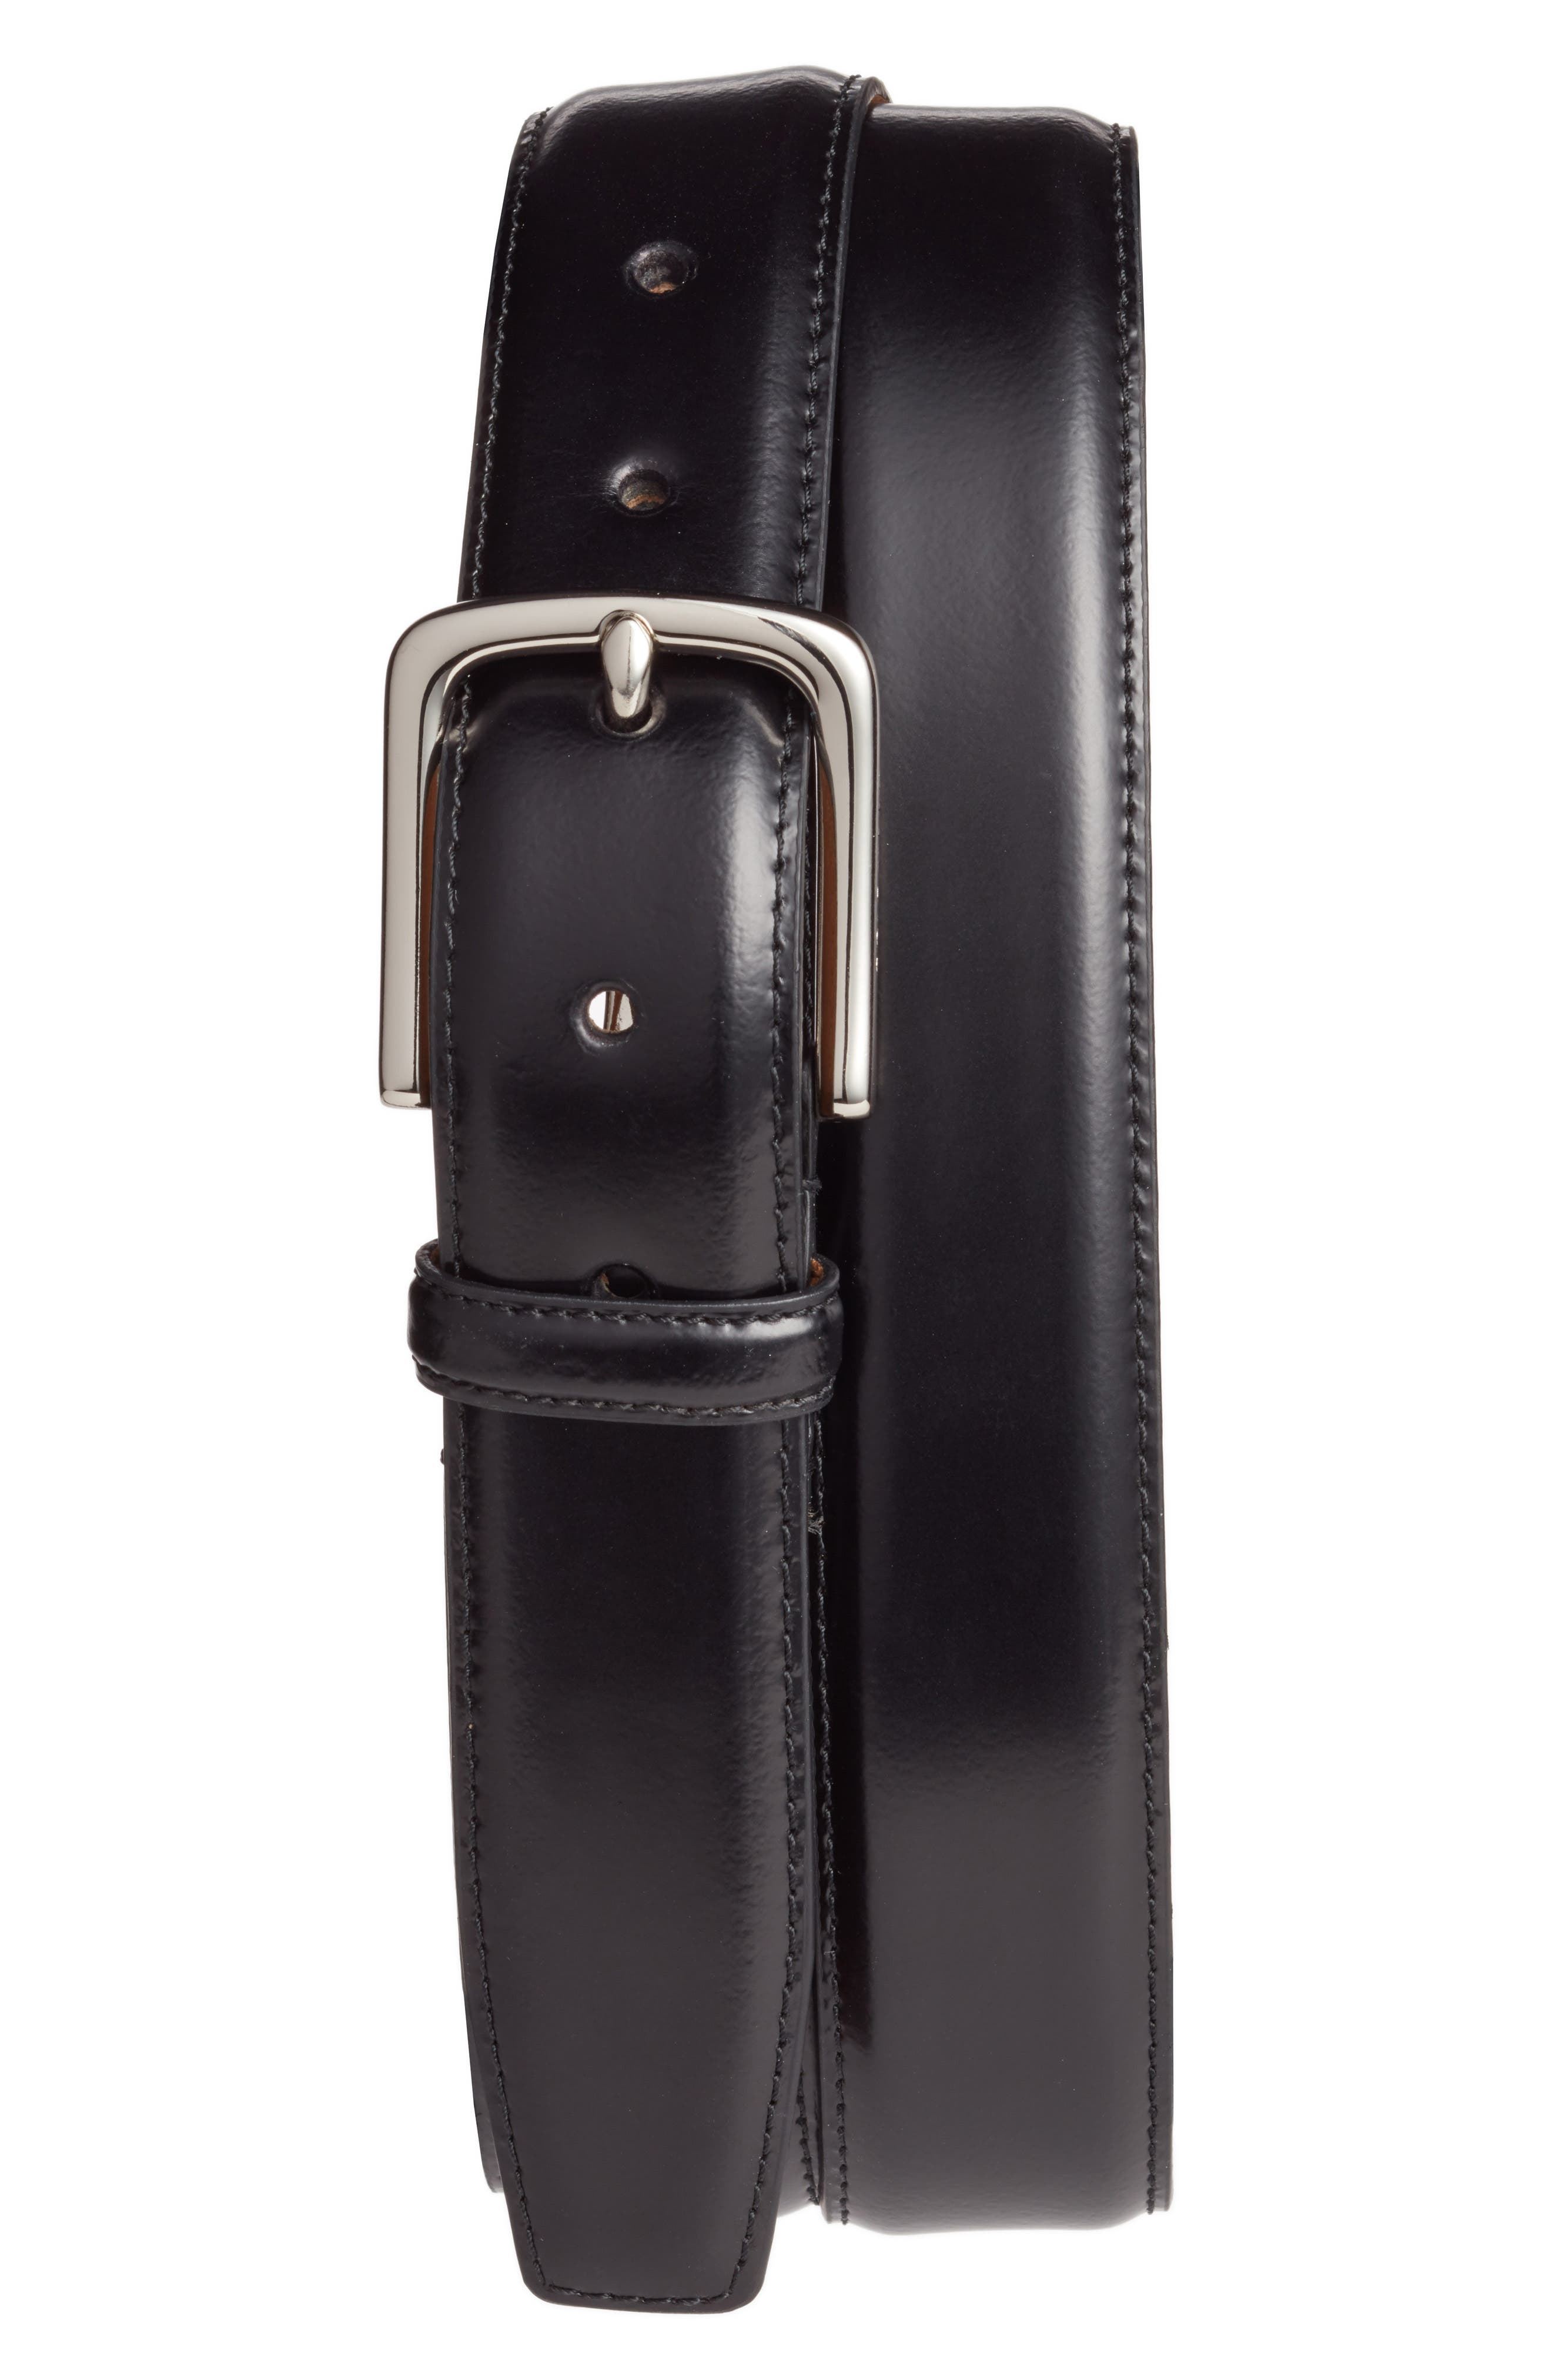 COLE HAAN, Leather Belt, Main thumbnail 1, color, BLACK WITH POLISHED NICKEL